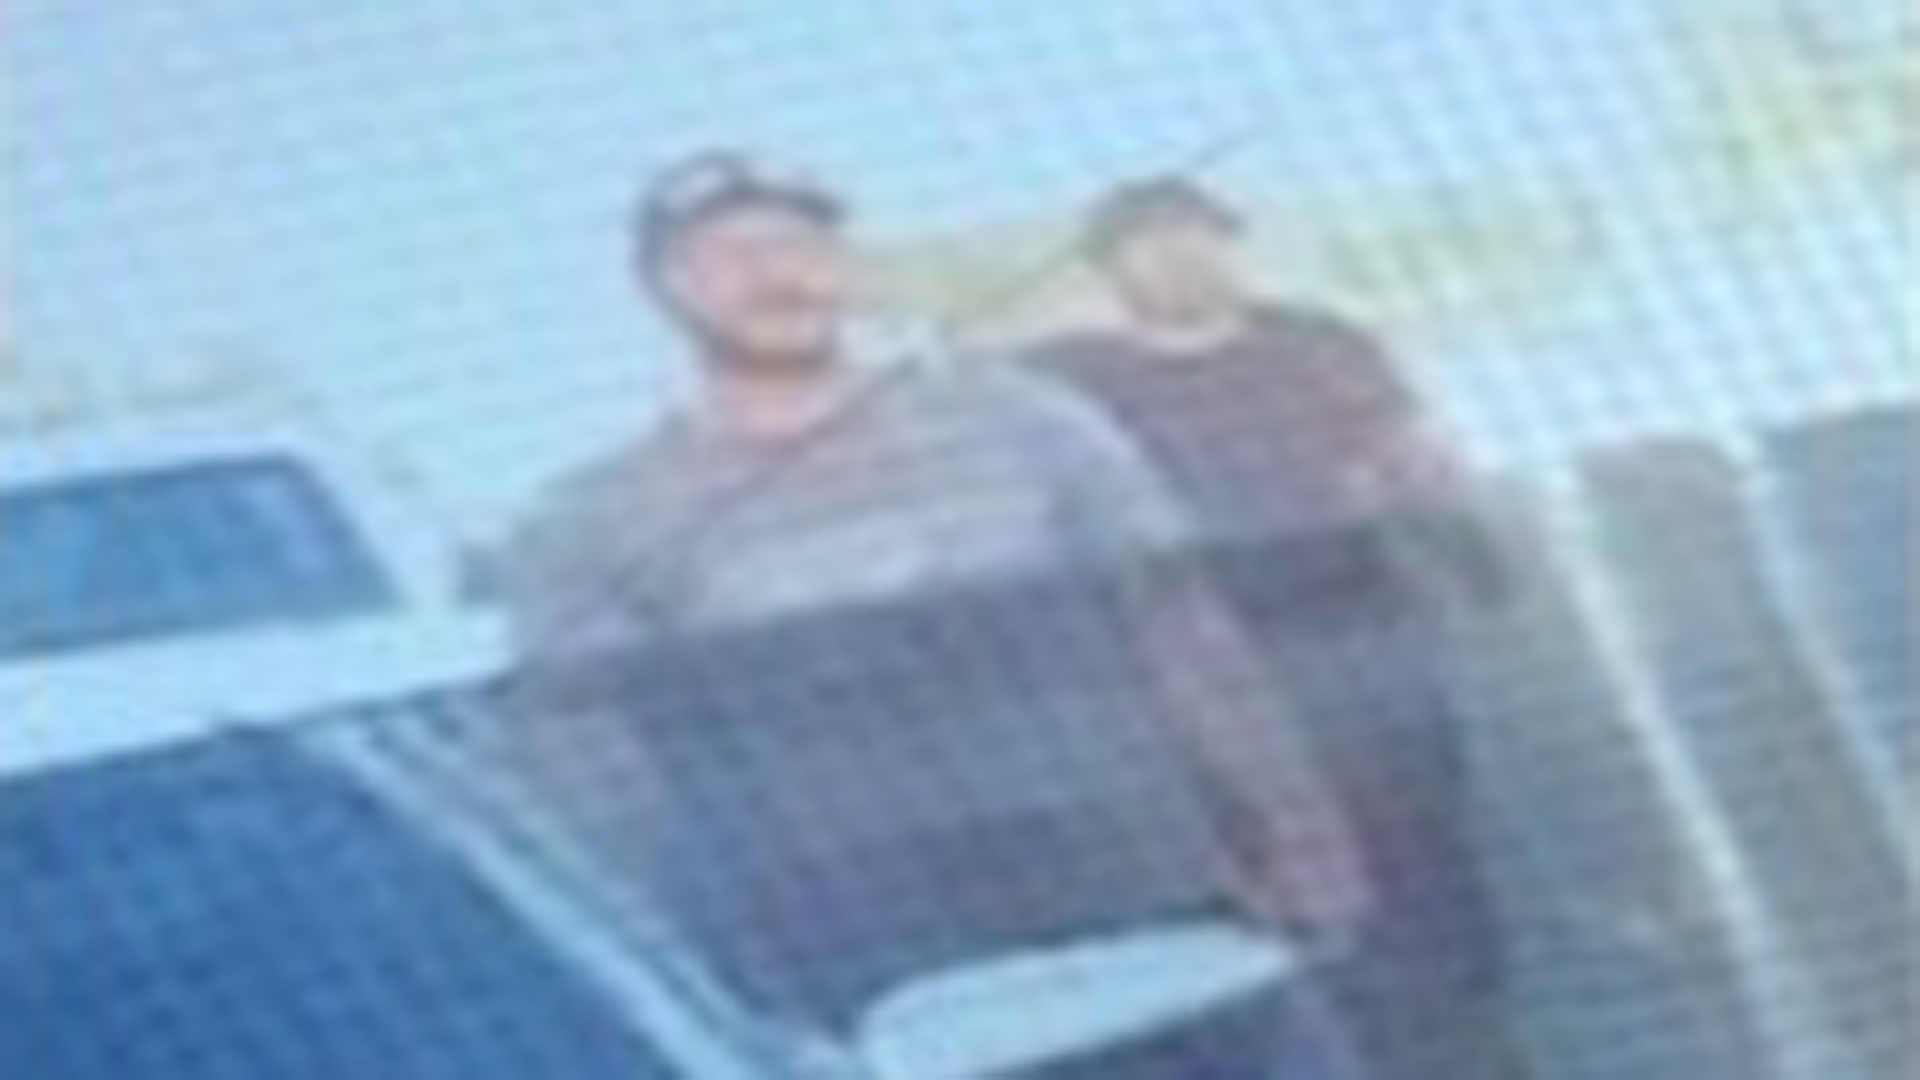 A man sought in an apparent road-rage incident is seen in an image provided by the Los Angeles County Sheriff's Department.